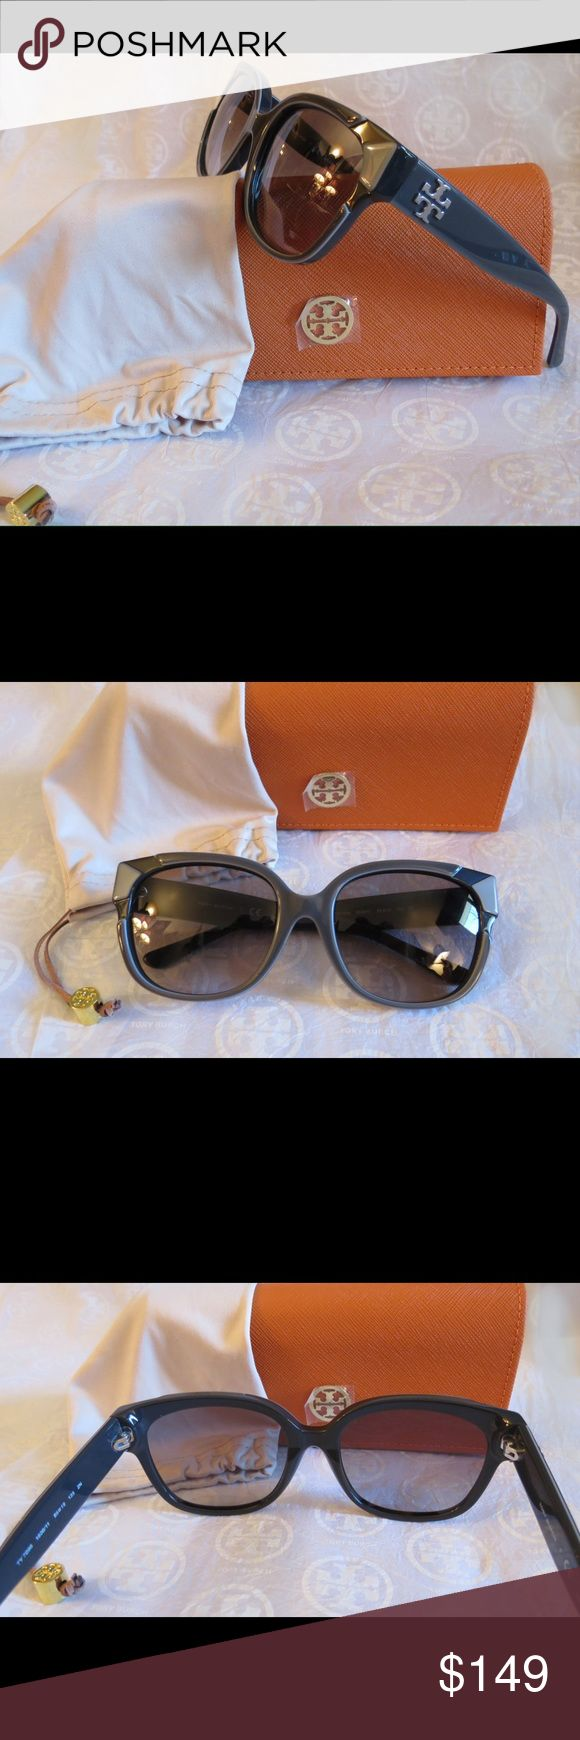 NWT Tory Burch Sunnies Ty7096  Shades of Gray NWT Tory Burch Sunnies Ty7096 1600/11  Different Shades of gray gradient lens and frame   Time for some new fabulous authentic designer shades!!  These are PERFECT Flawless NEVER even worn or tried on. It's just reflections that might make they look like there are issues, they are again Perfect!  Comes with original bag with tags from Luxottica, case and dust bag.  All of my items are Guaranteed 100% Genuine I do not sell FAKES of any kind No…